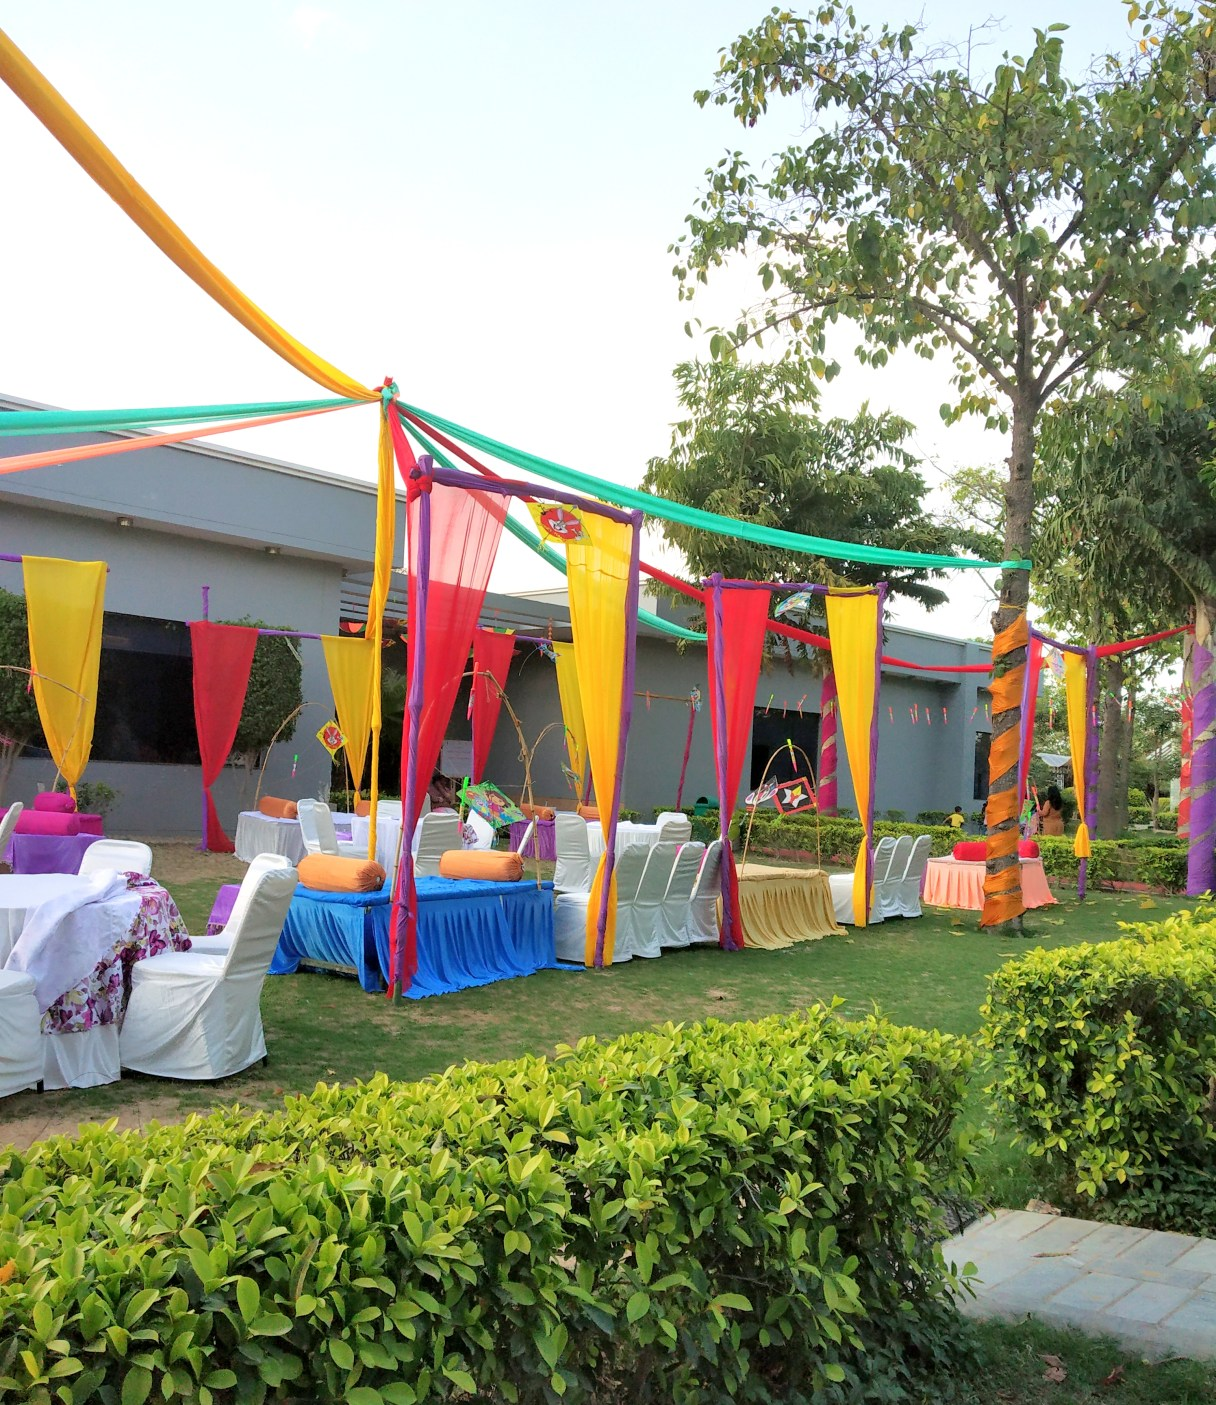 Holi decorations in the front lawn